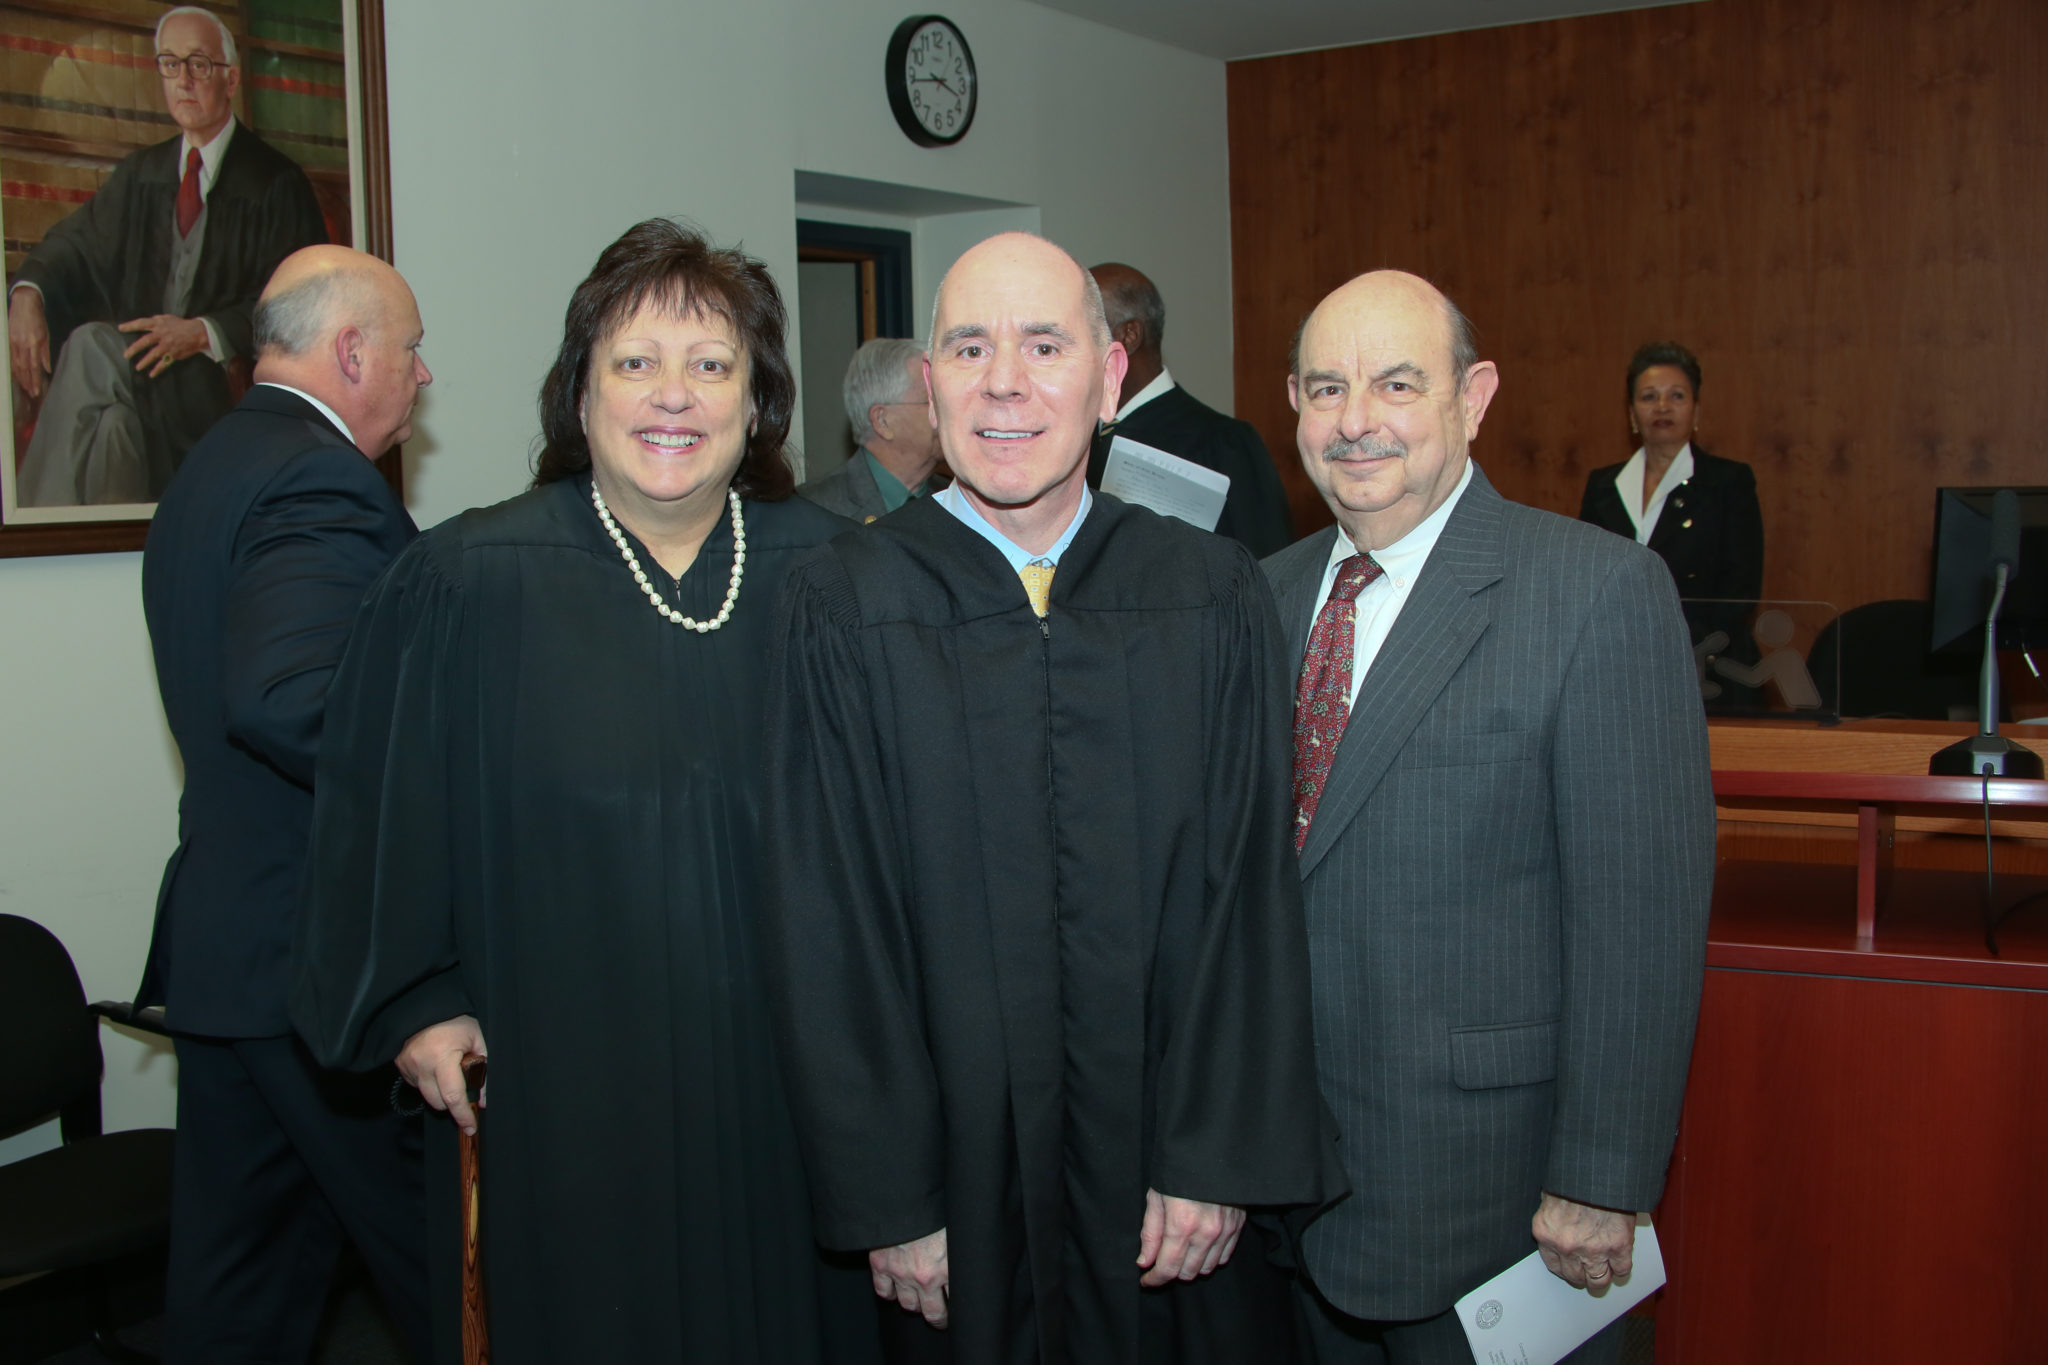 Judge Corodemus swears in Judge Bob Jones